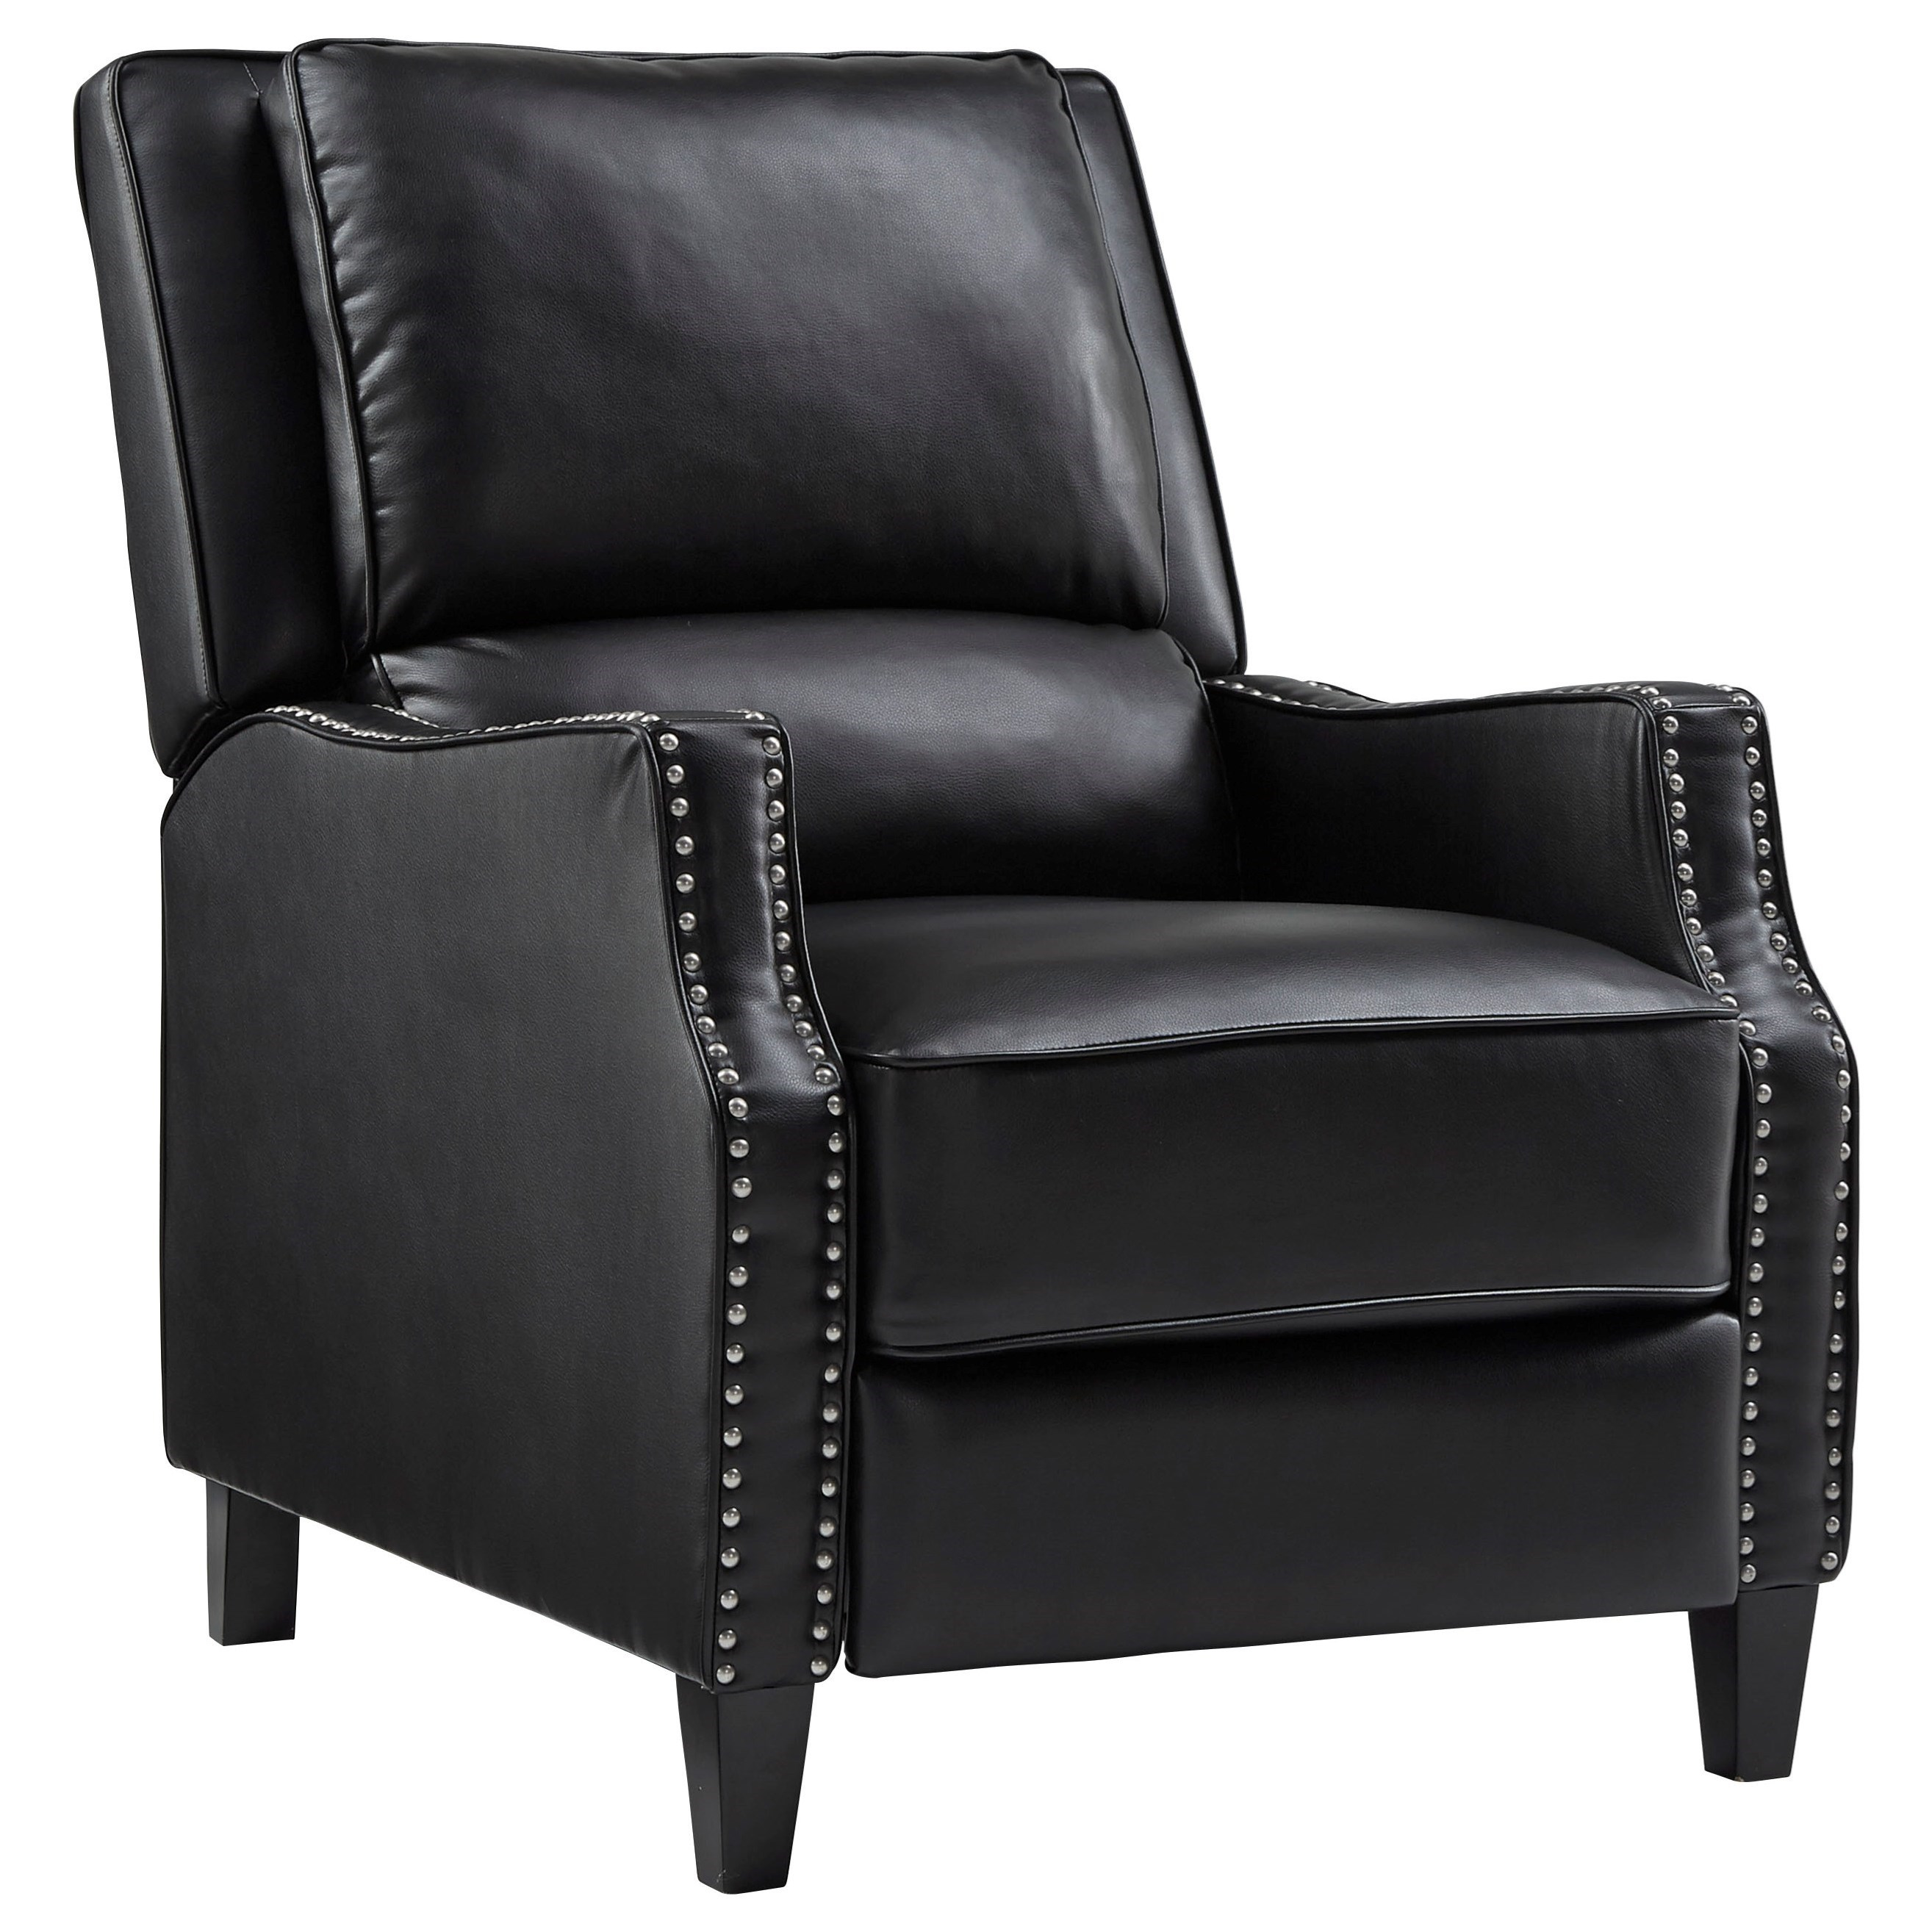 Sleek Recliner with Tight Upholstery and Nailhead Trim